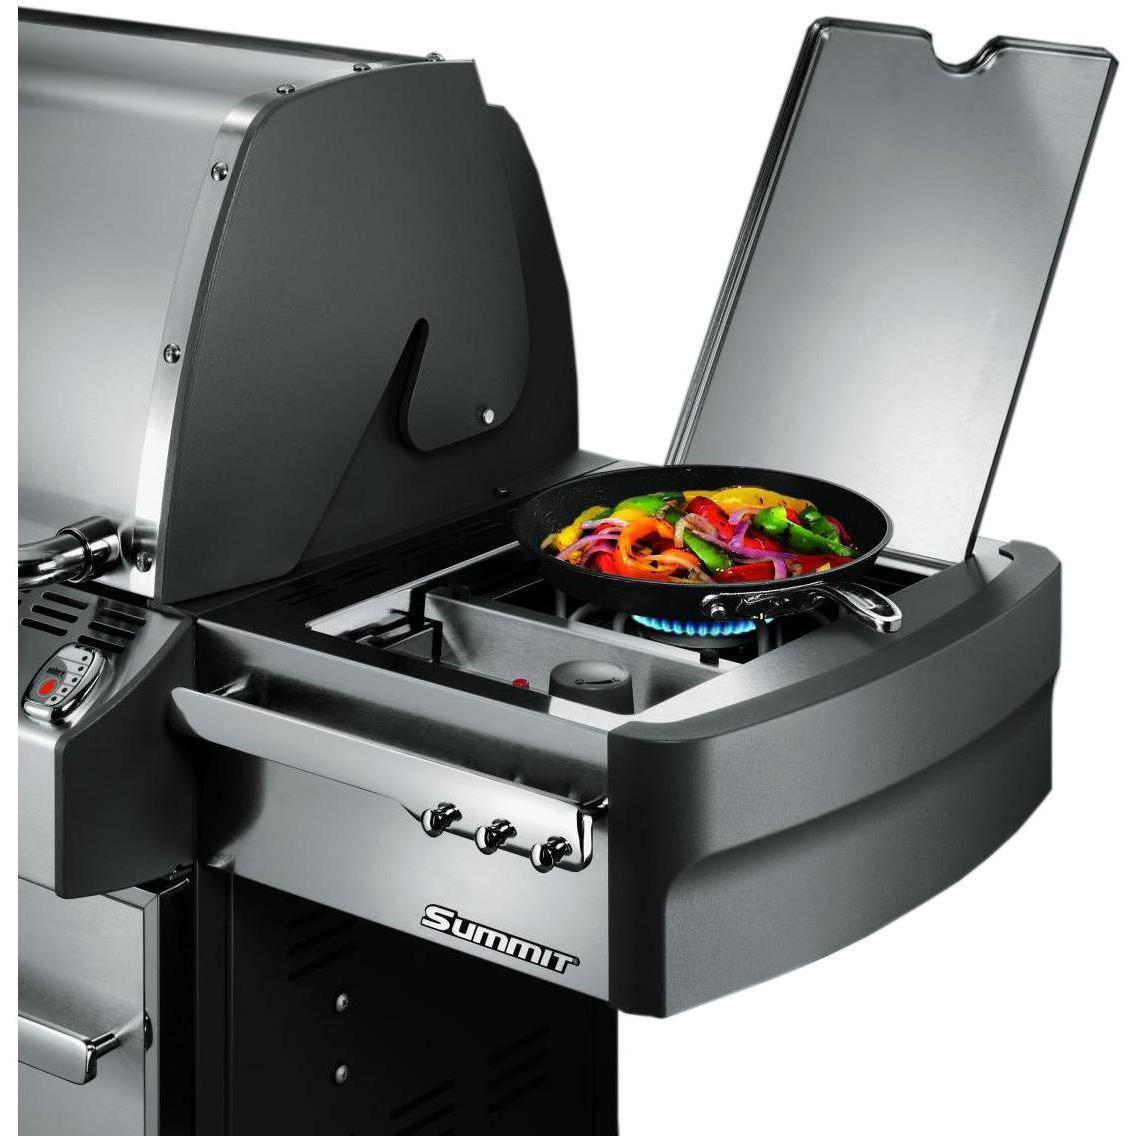 Weber Summit S-670 Propane Gas Grill With Rotisserie, Sear Burner & Side Burner - 7370001